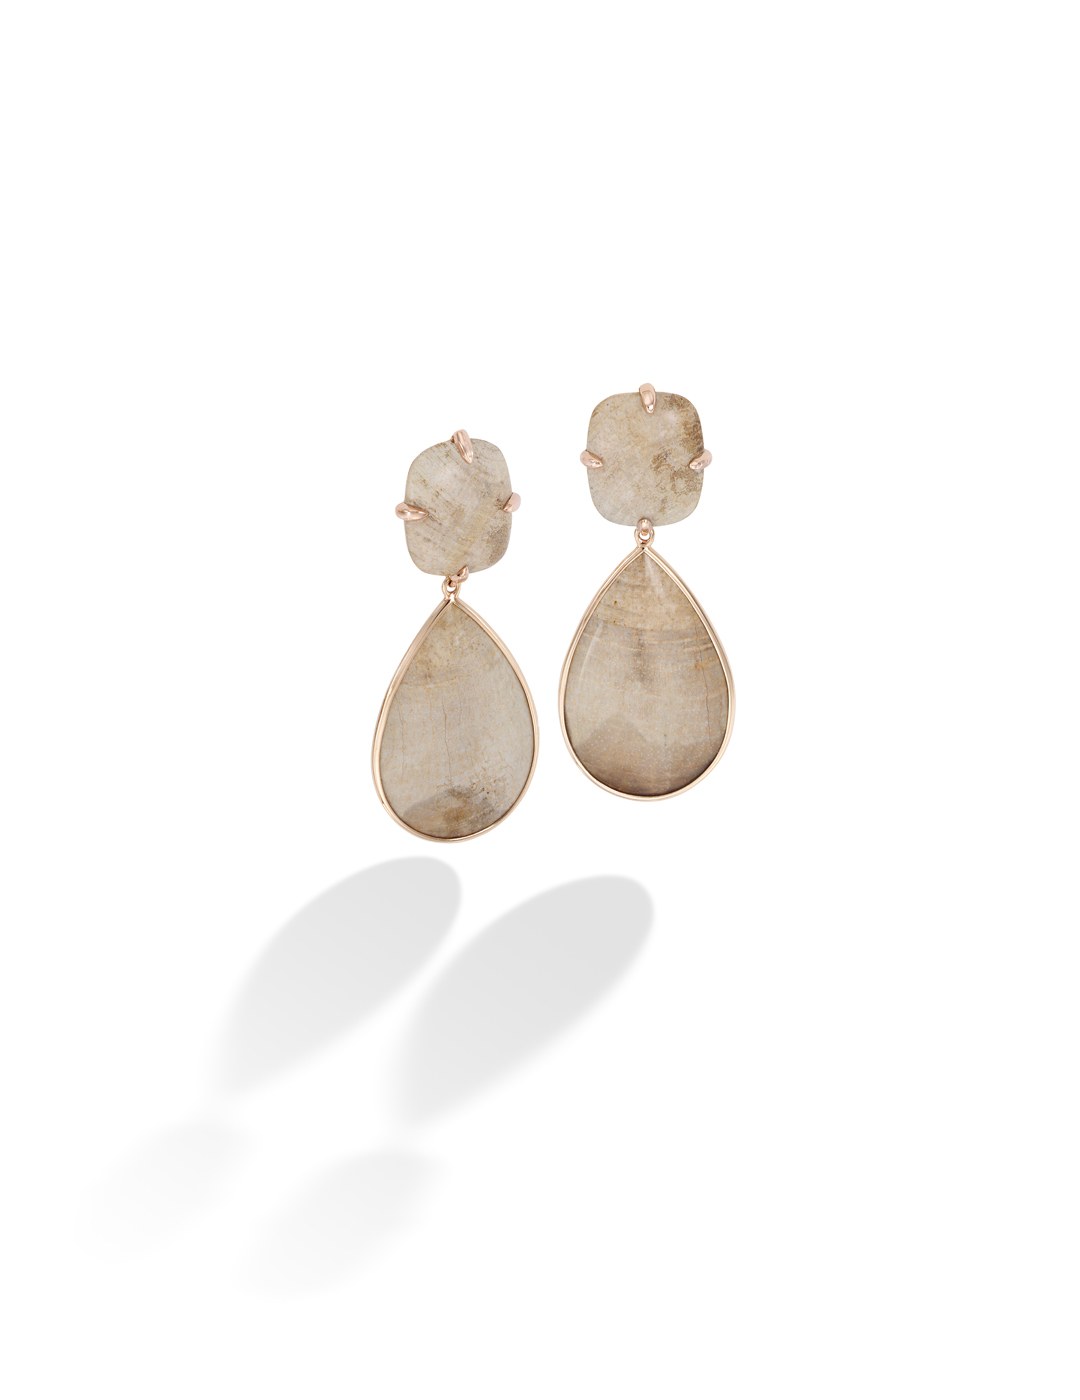 mish_products_earrings_Roadster-PetrifiedWood-ER-1